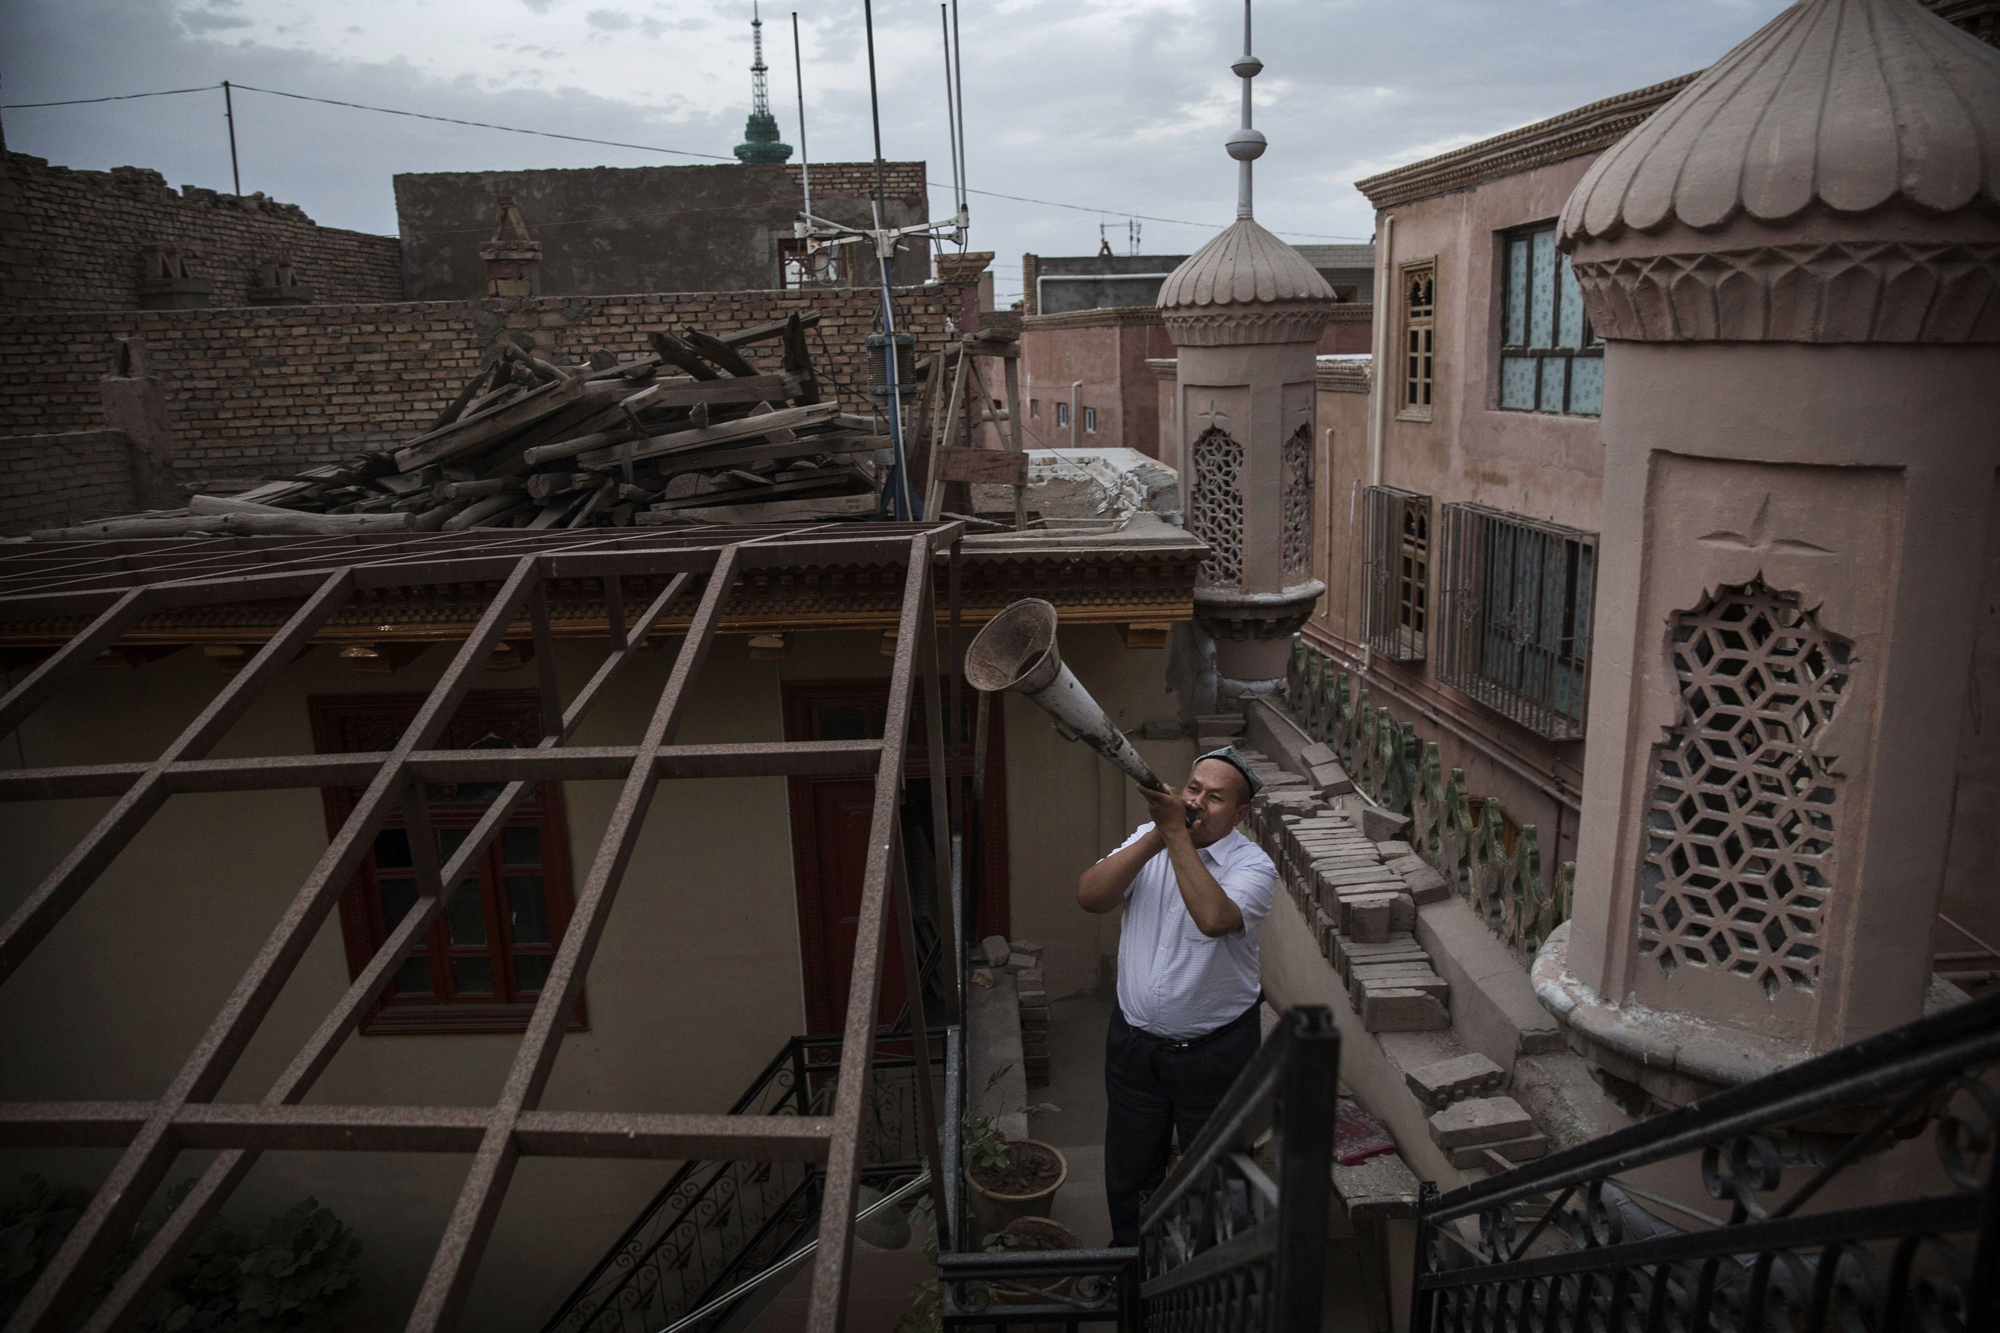 A Uighur Muslim muezzin uses a bullhorn to call the evening prayers on July 30, 2014 in Kashgar.